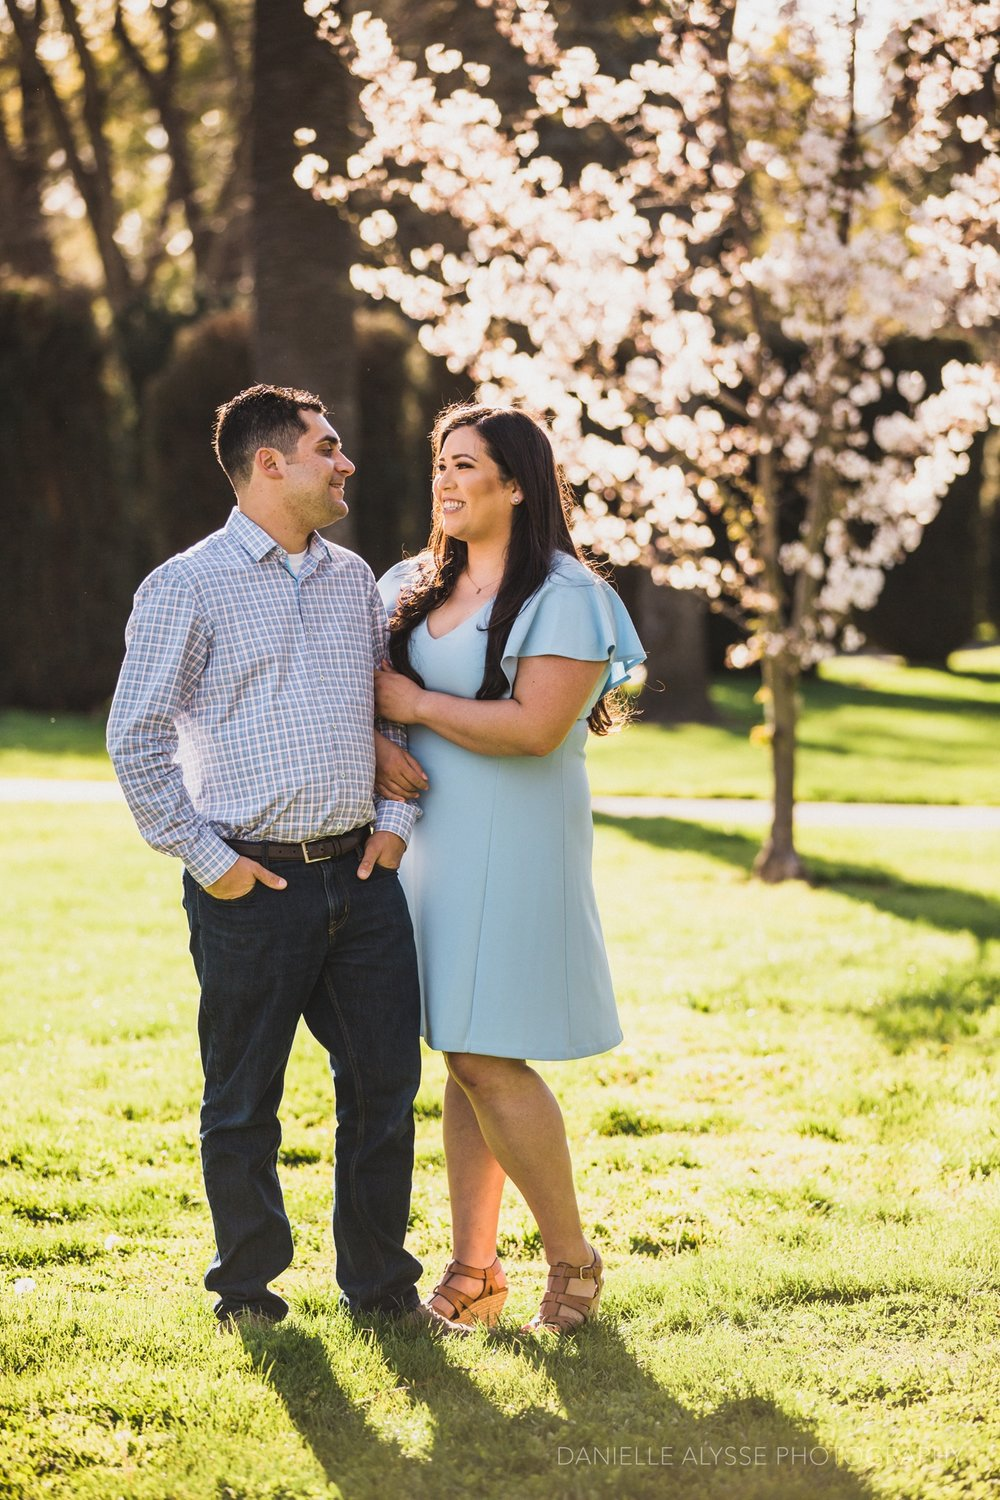 180324_engagement_lily_danielle_alysse_photography_downtown_sacramento_wedding_photographer_blog_20_WEB.jpg